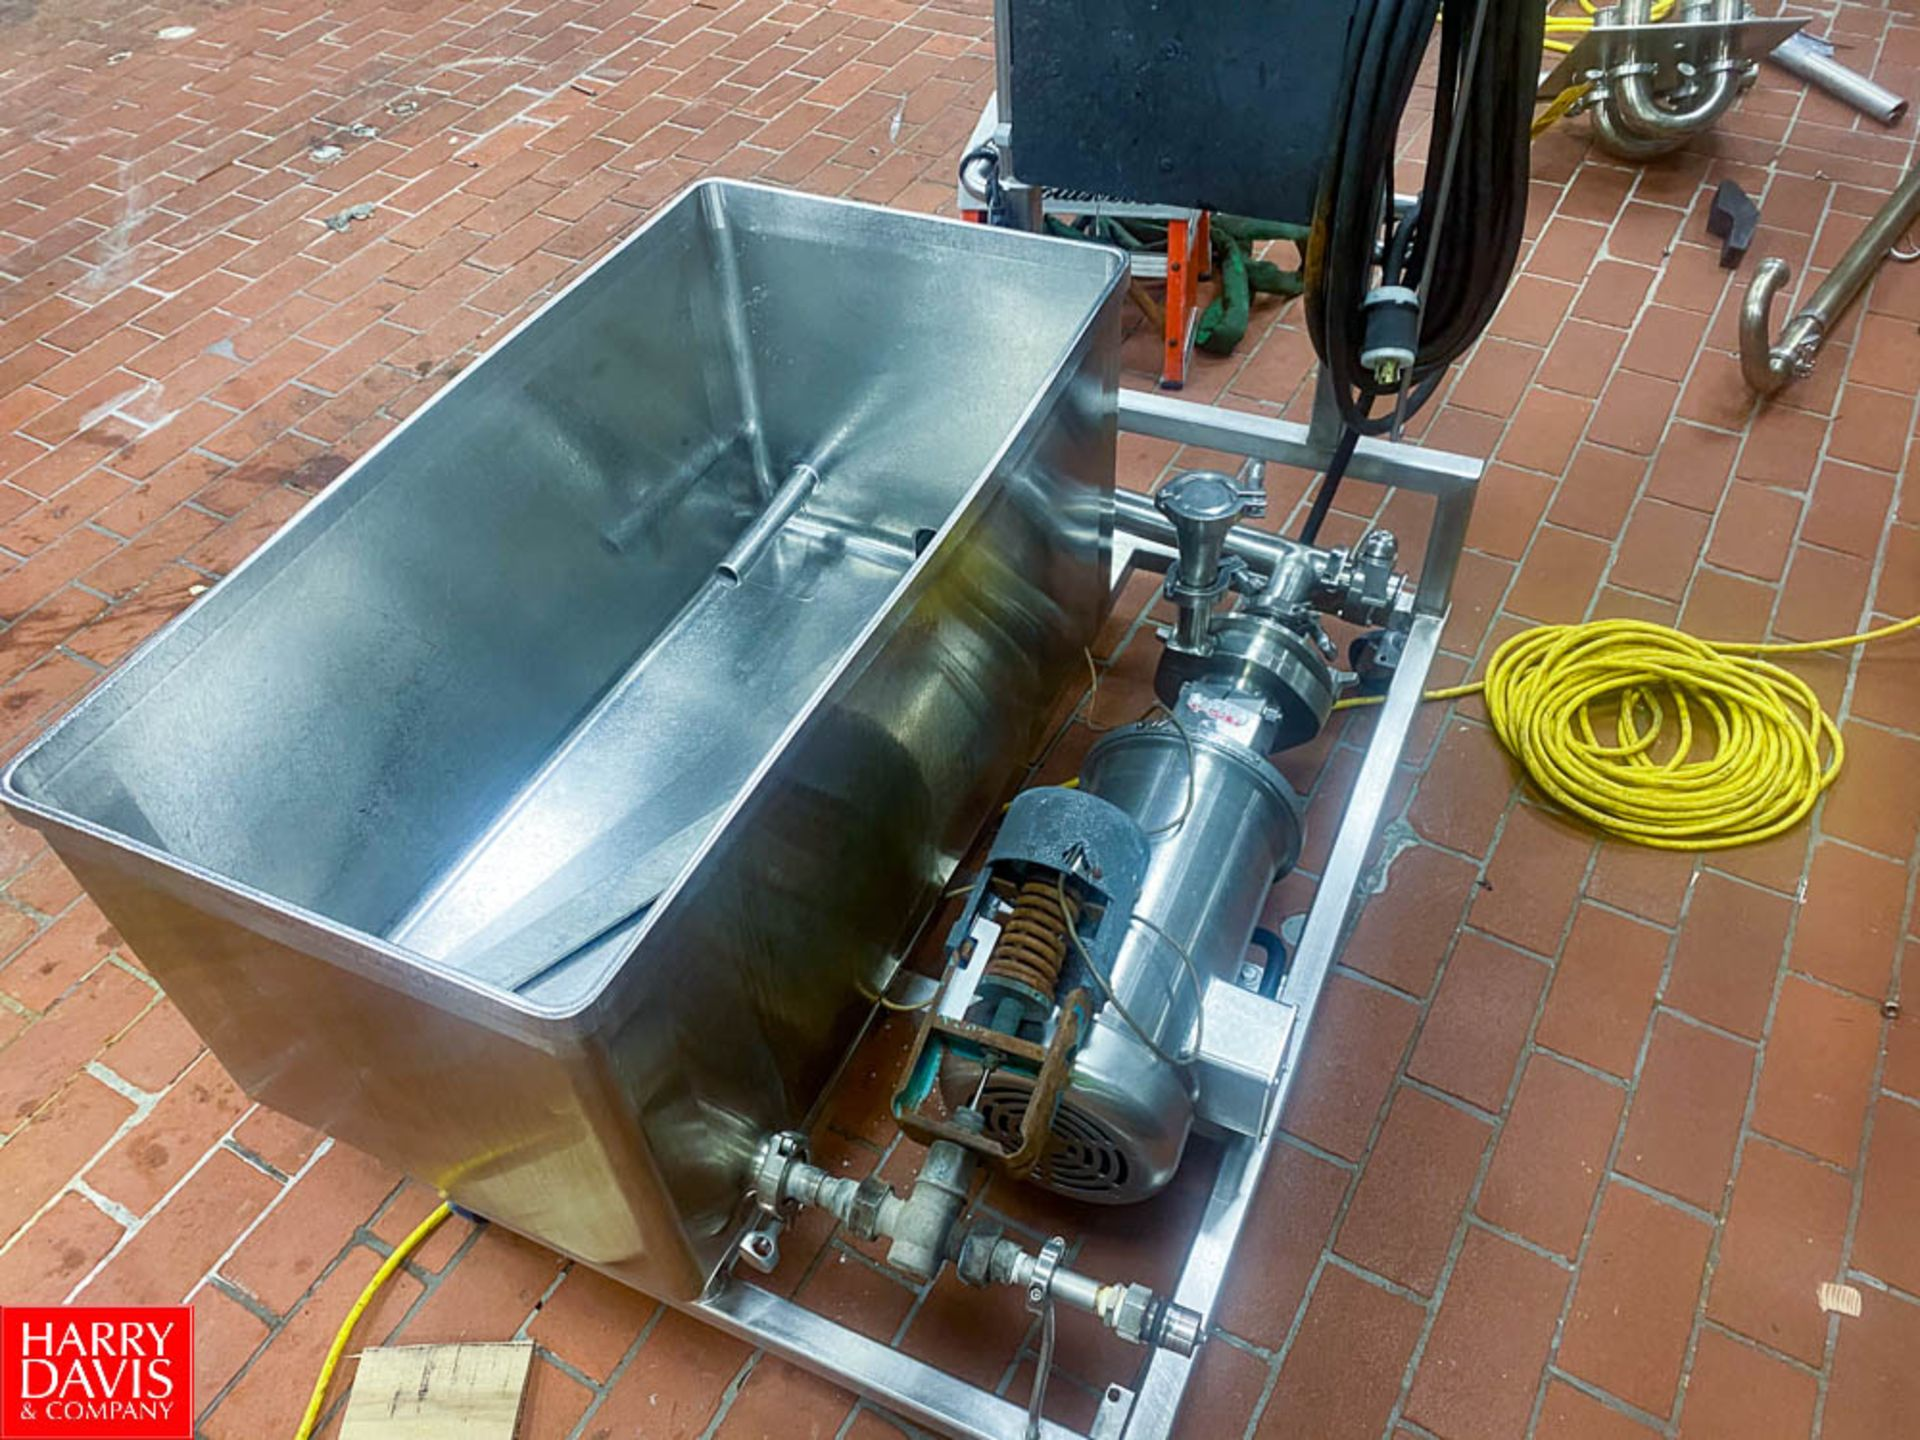 Lot 4 - S/S COP Tank With Anderson Chart Recorder And Fristam 5 Hp. Pump - Rigging Fee: $ 200